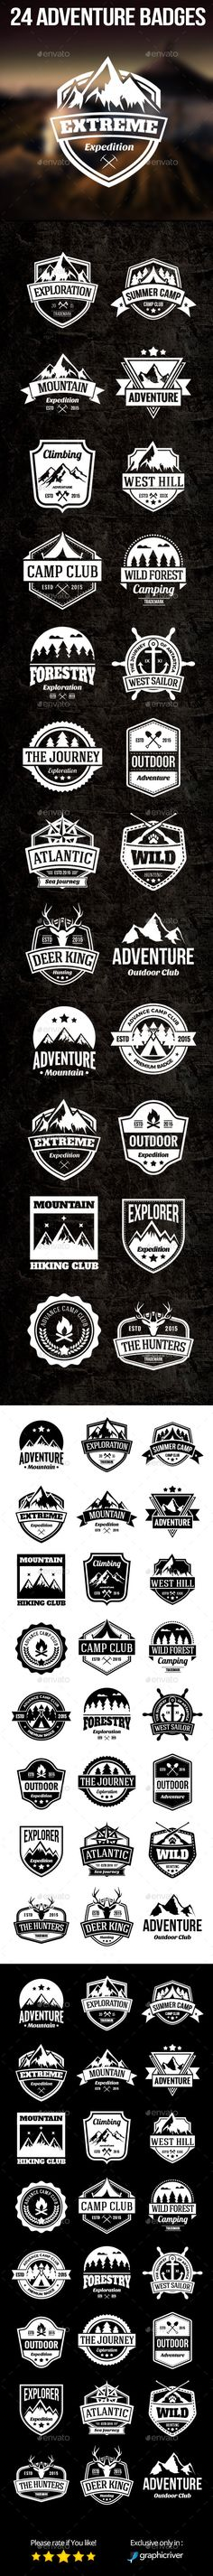 24 Adventure Badges Tempalte #design Download: http://graphicriver.net/item/24-adventure-badges/12535313?ref=ksioks